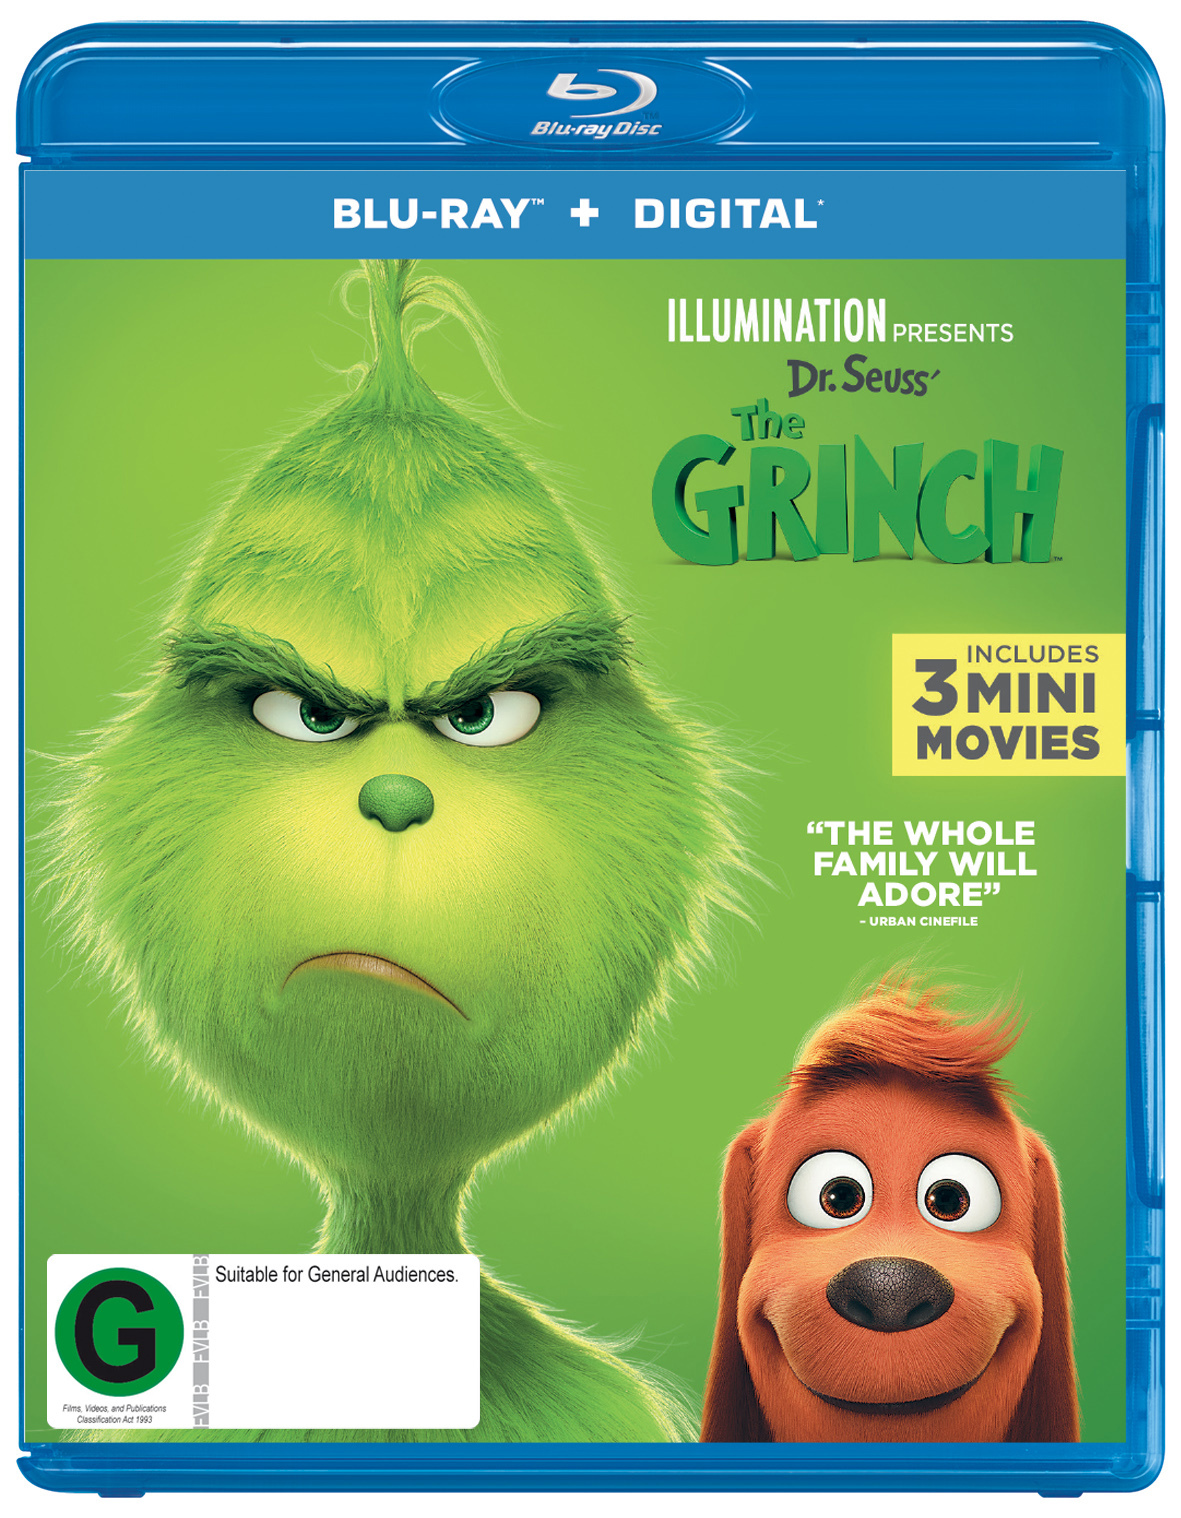 The Grinch on Blu-ray image